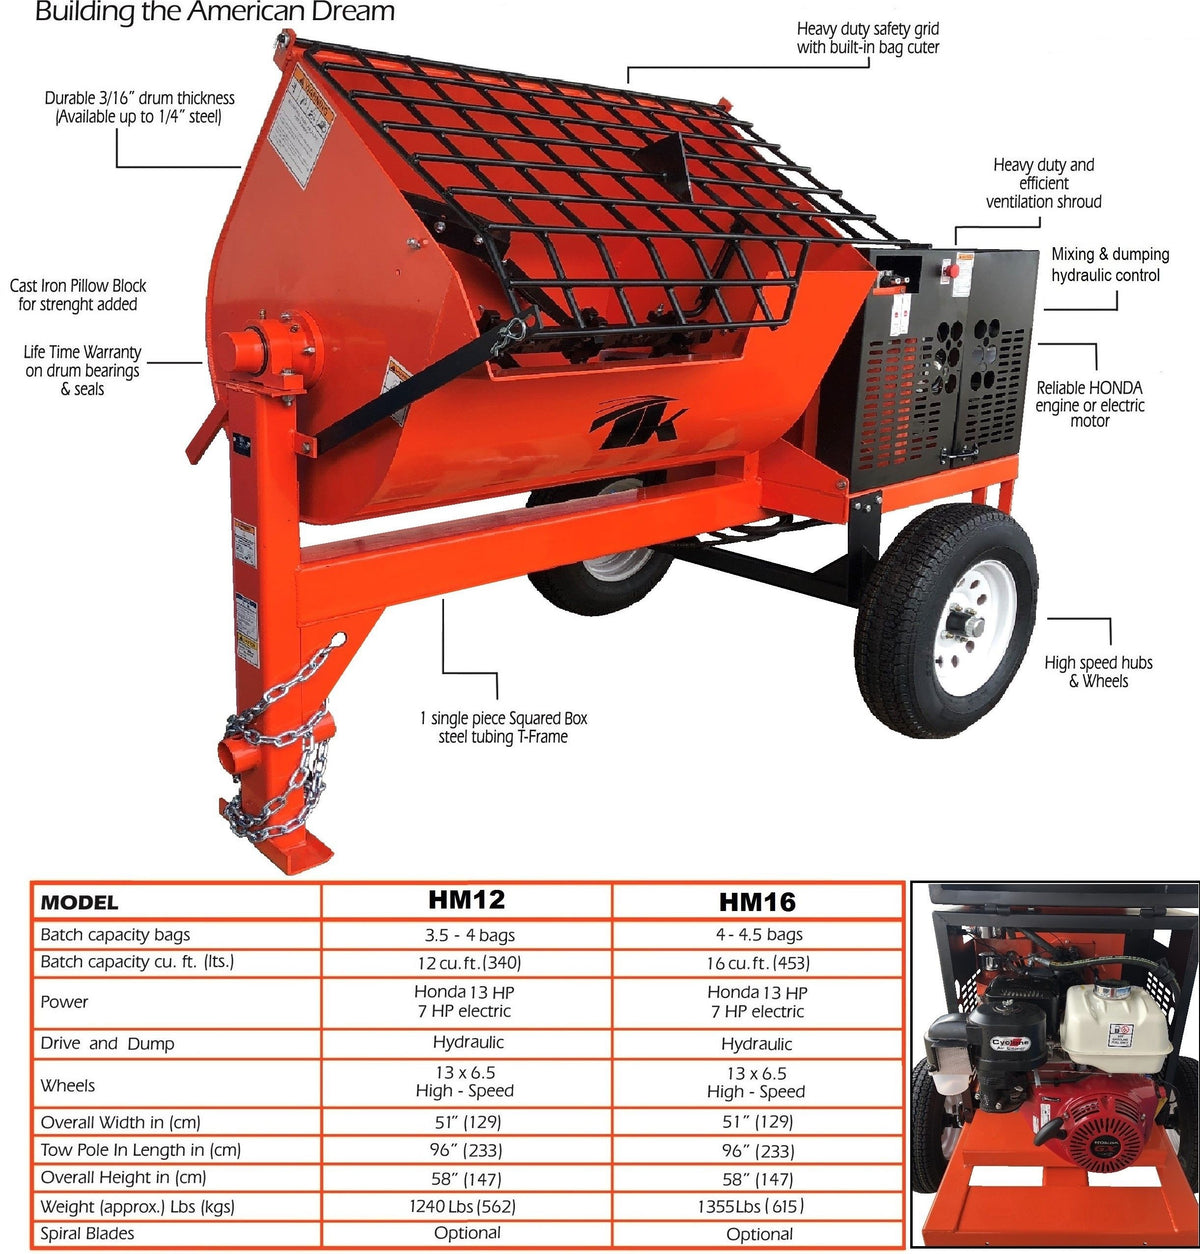 16 cu ft.Hydraulic Towable Steel Drum Concrete Cement Mortar Plaster Mixer W/ Honda GX390 Engine